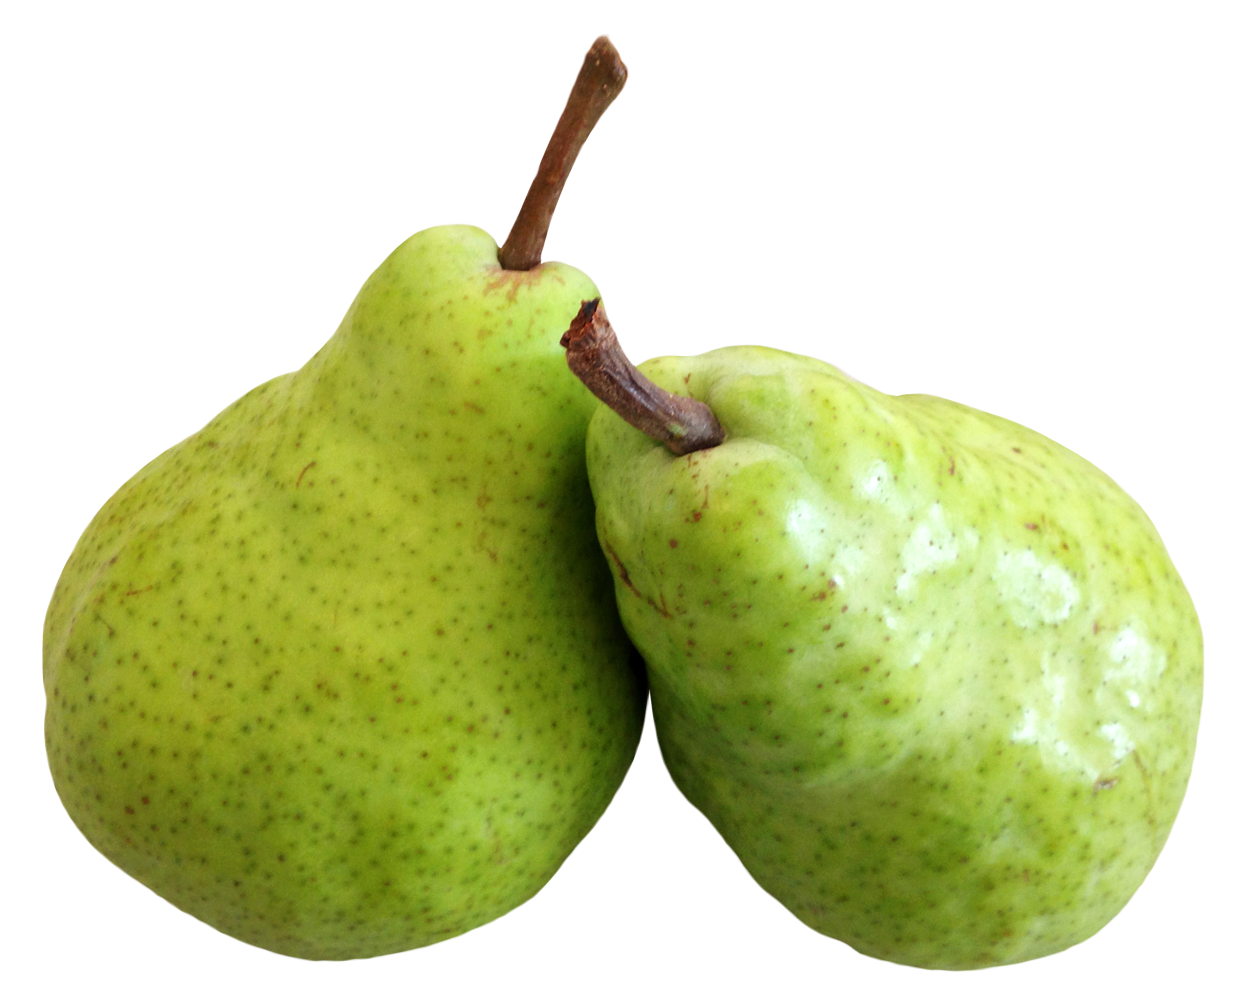 Pear PNG - 8915